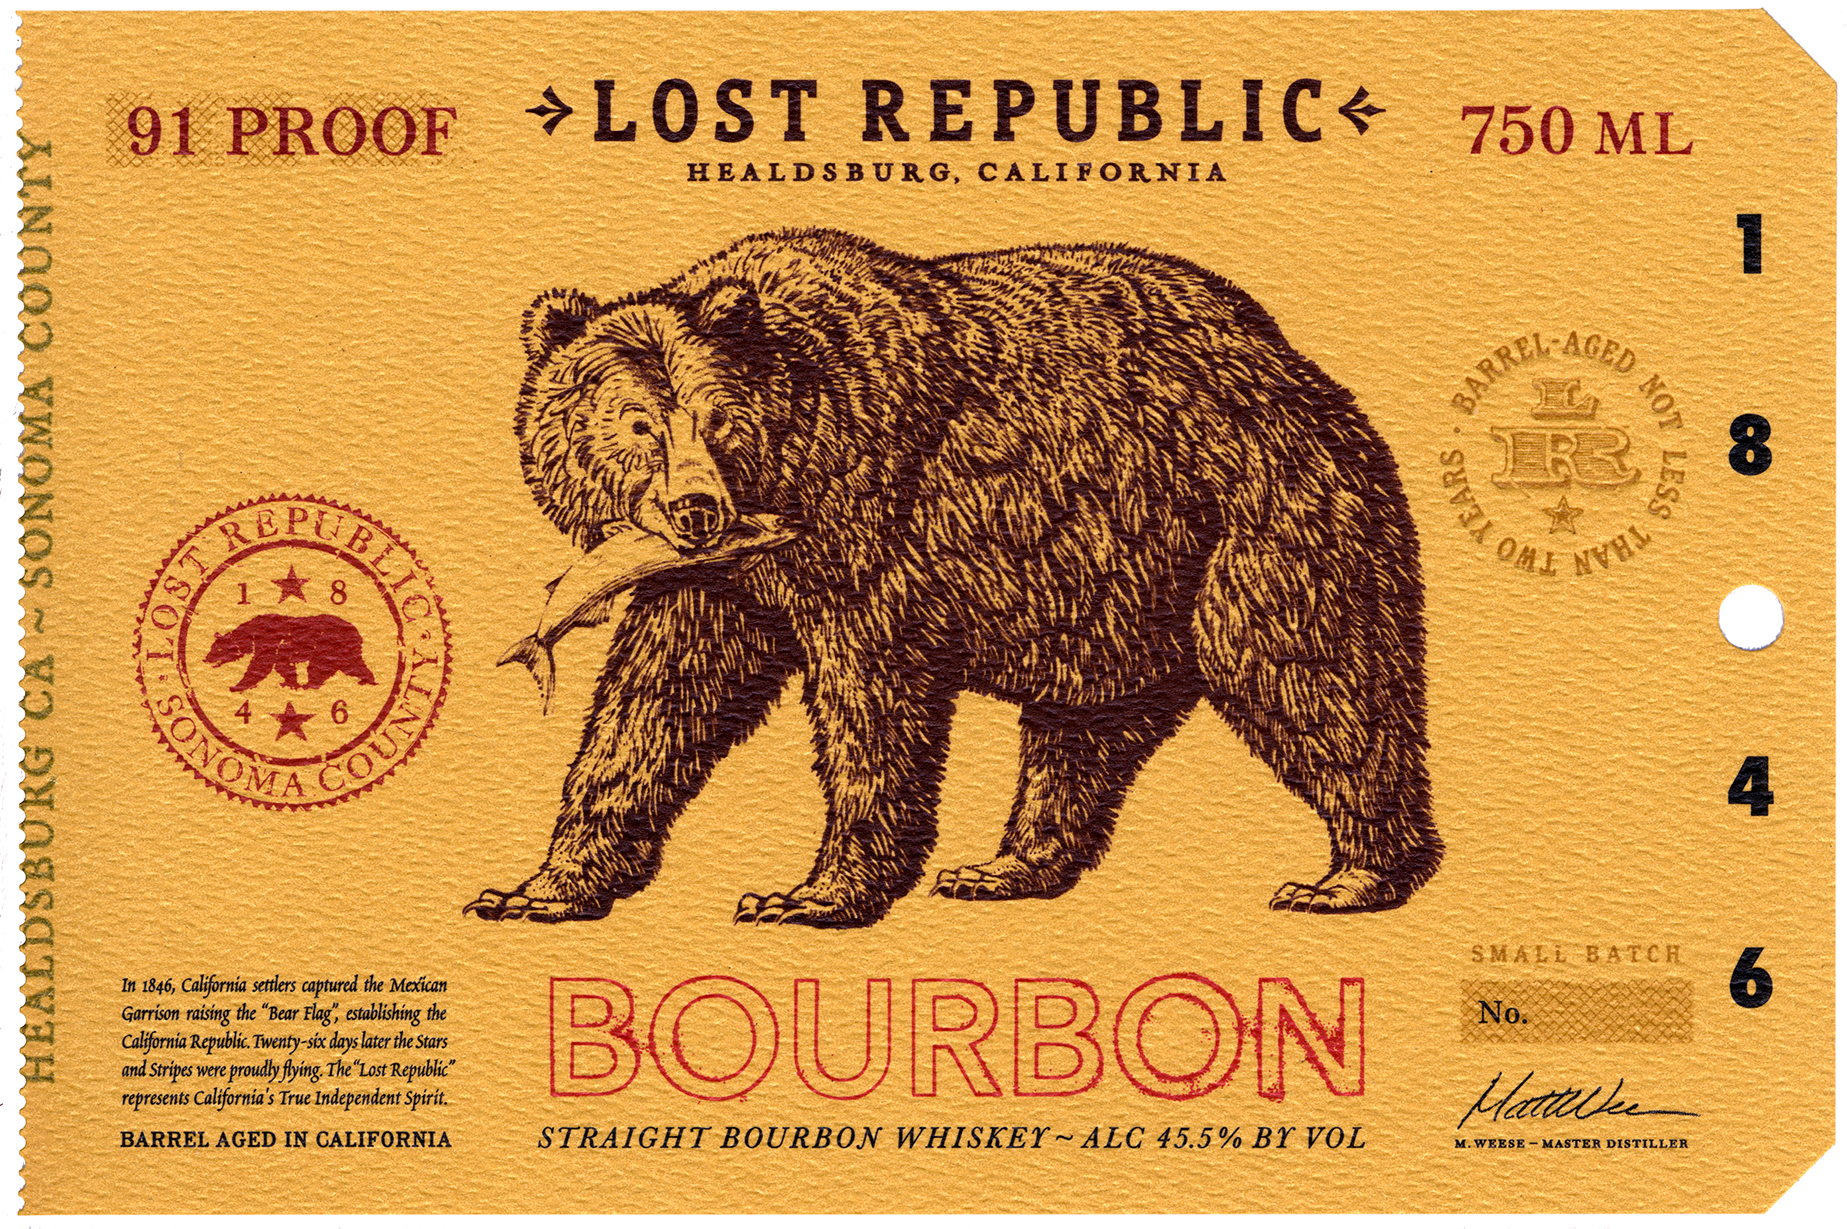 Auston Design Group - Lost Republic Bourbon - Label